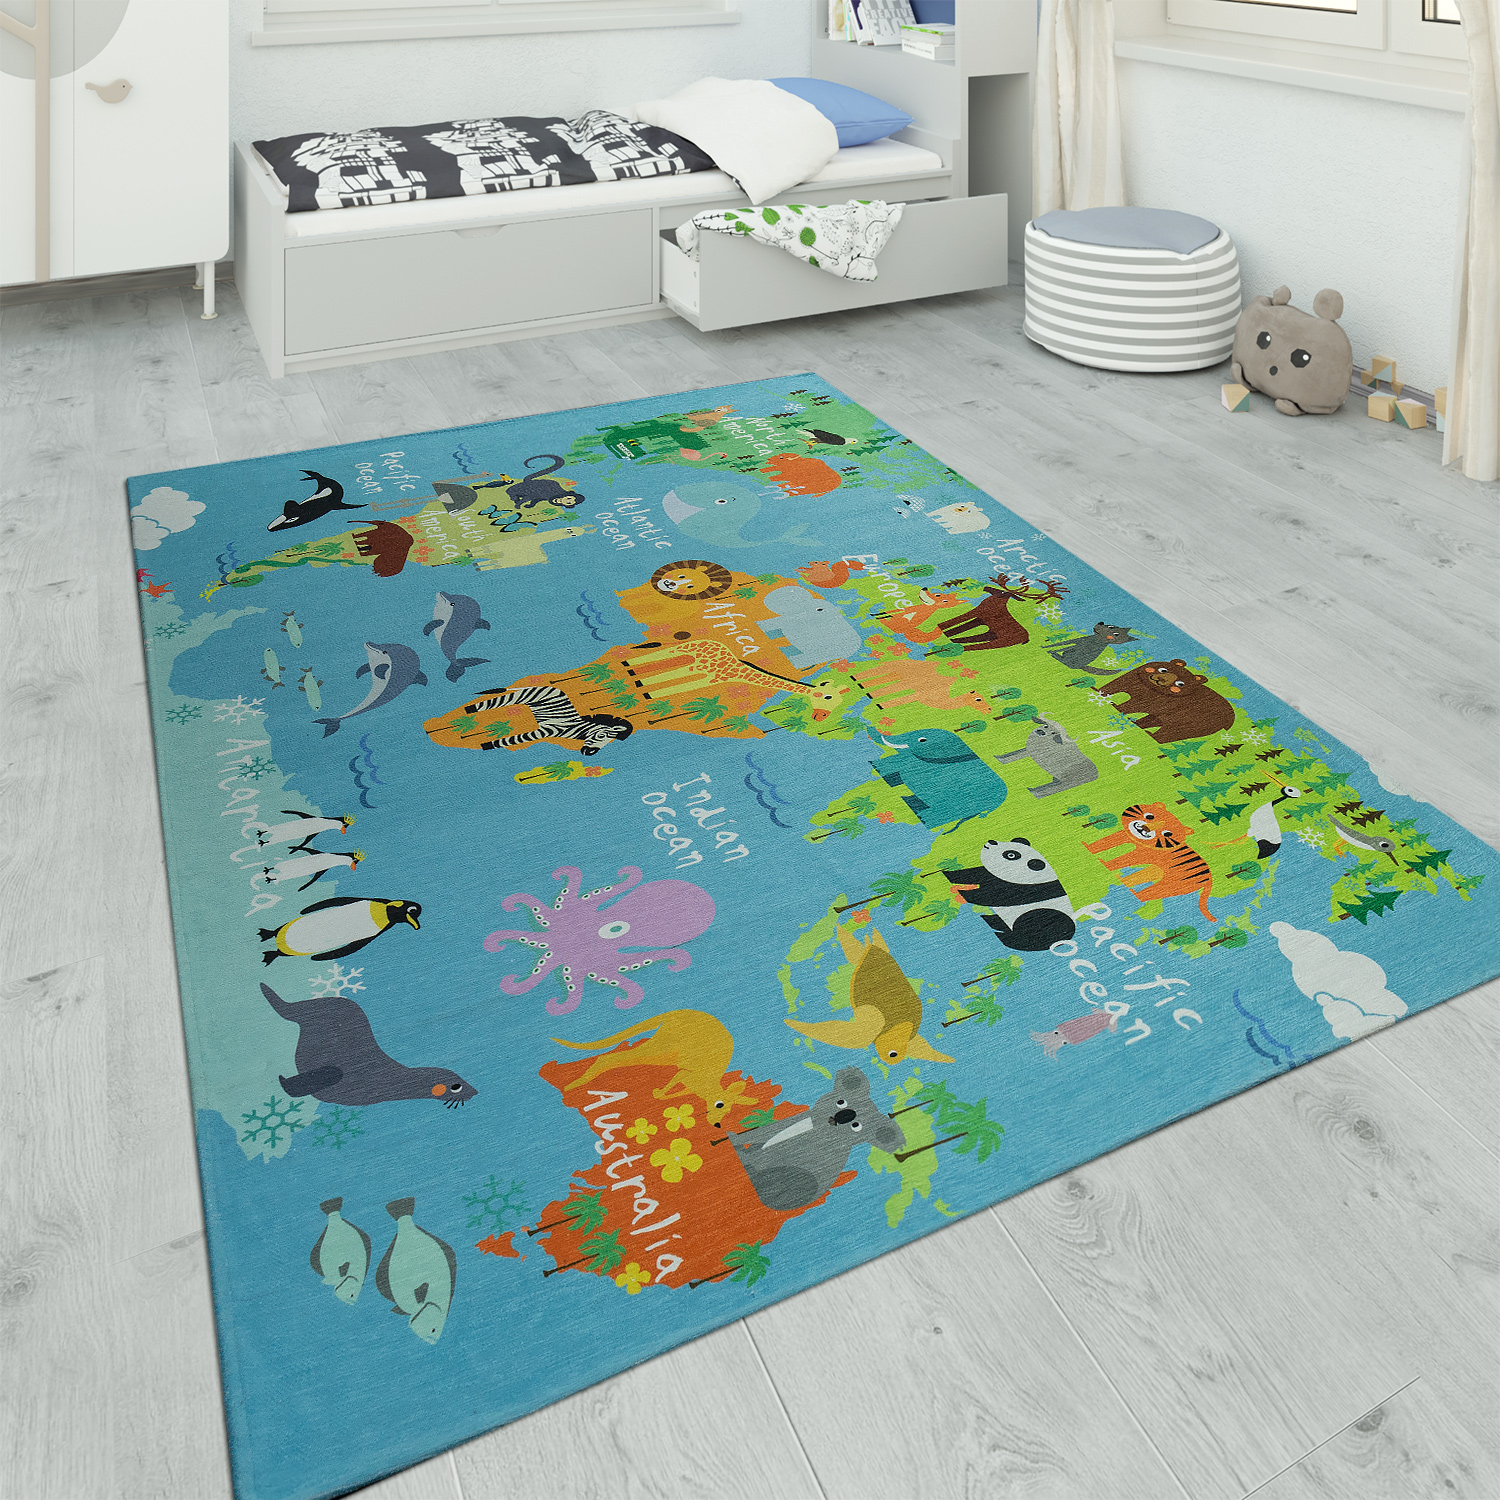 Children's Rug Playroom World Map With Animals Blue